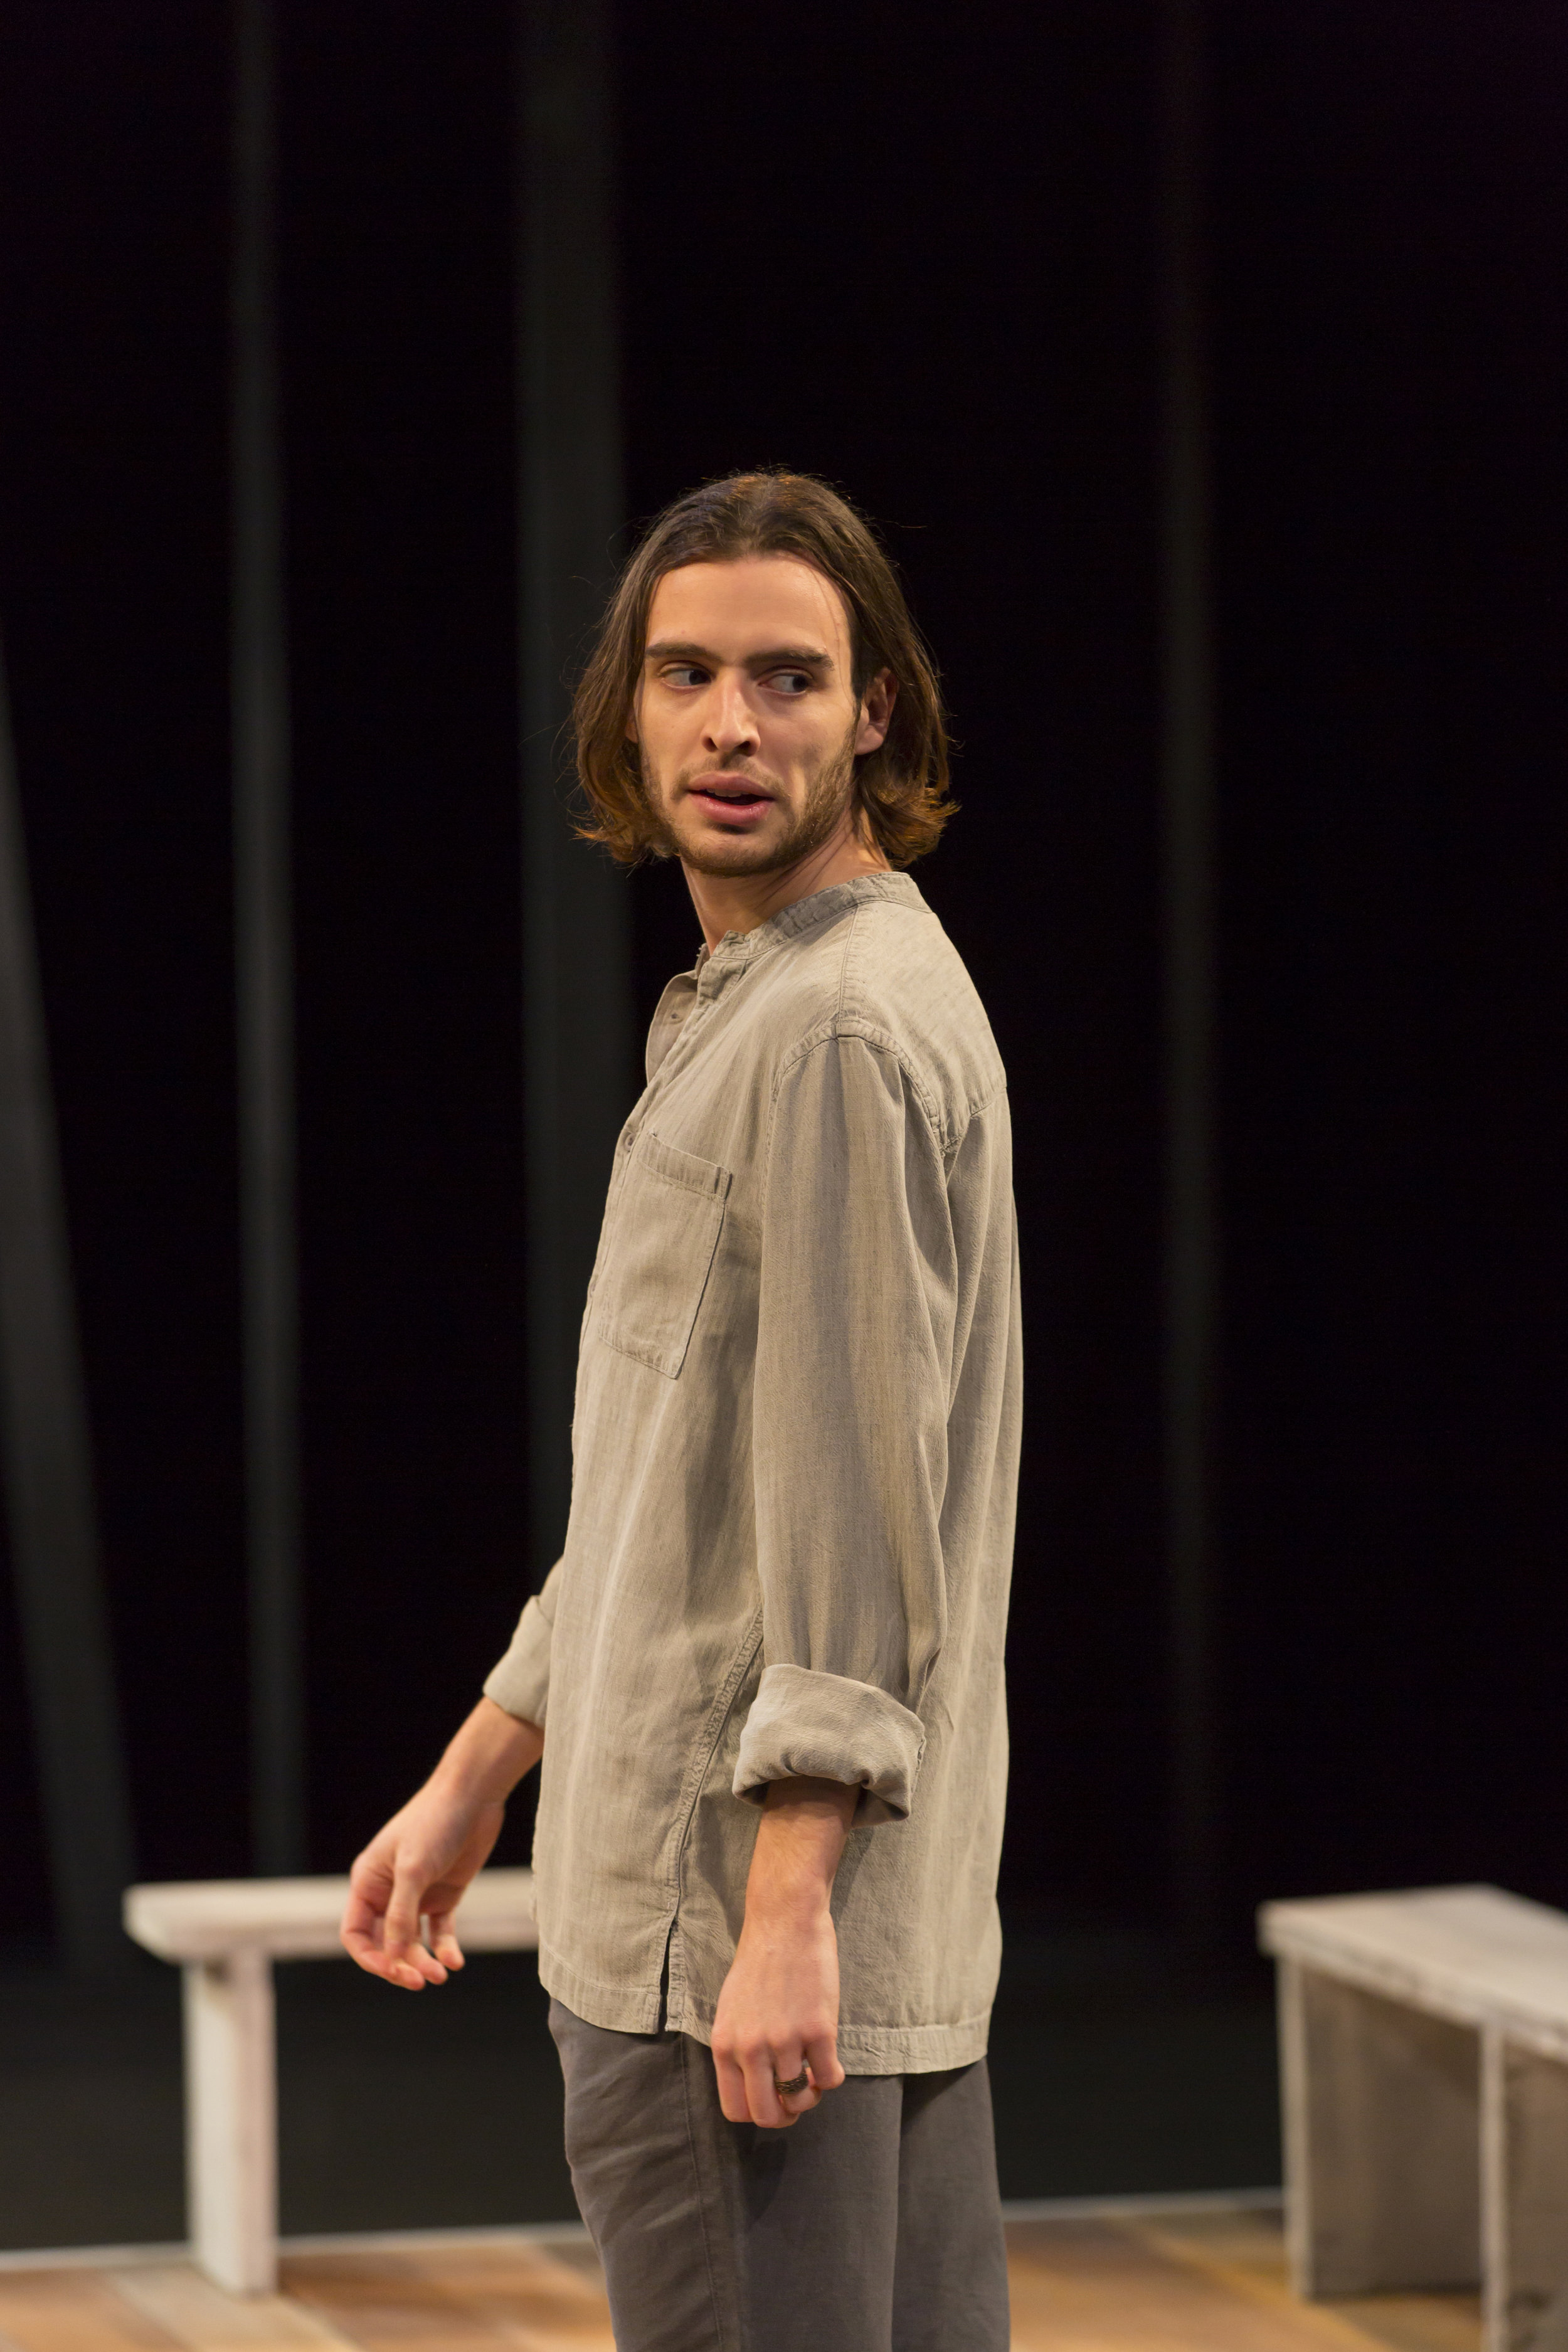 Dylan Frederick as CLAUDE